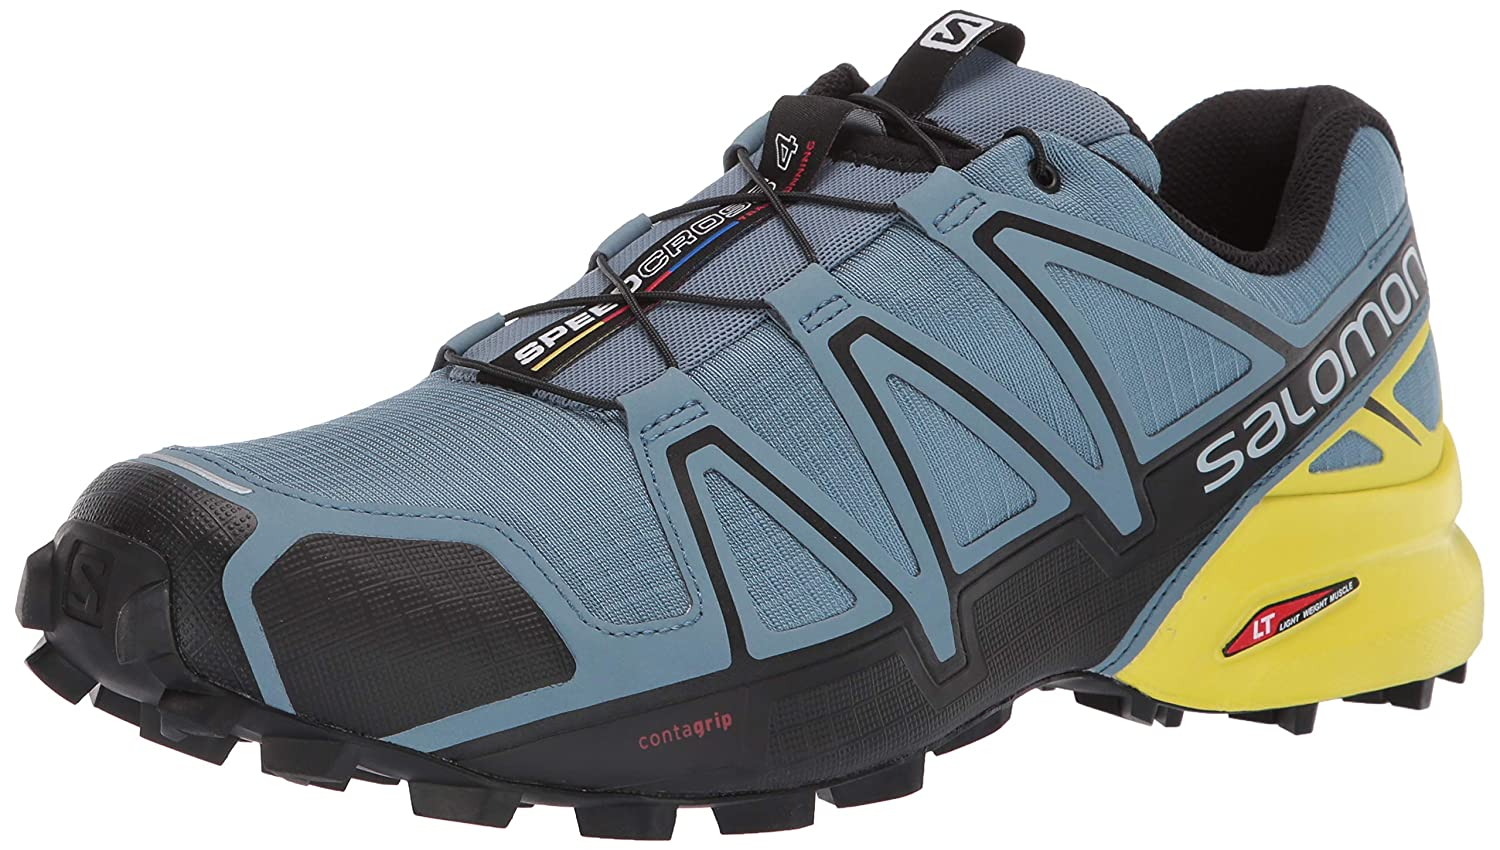 Salomon Men s Speedcross 4 Trail Running Shoes, Bluestone Black Sulphur Spring, 12 US